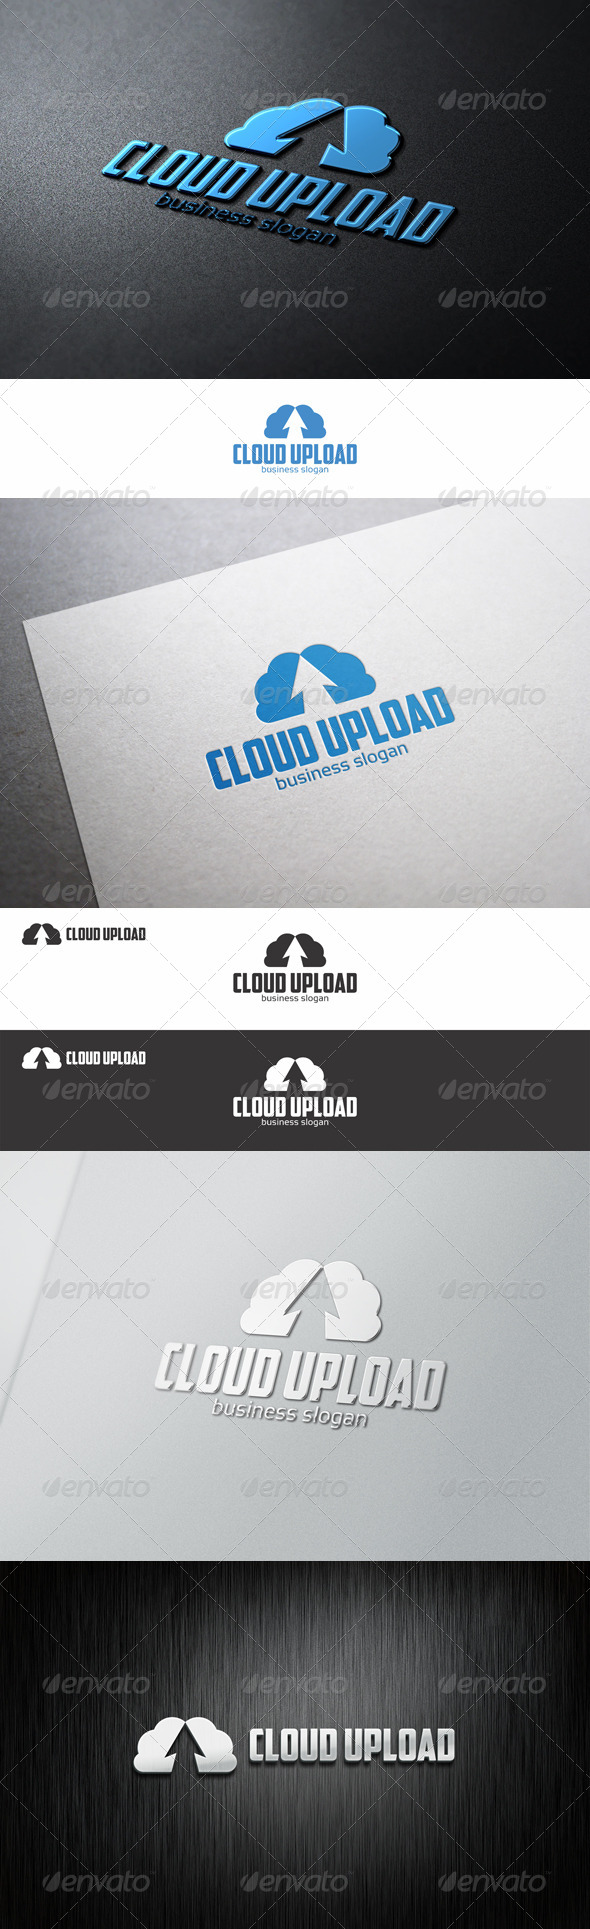 Cloud Up - Upload Hosting Logo - Nature Logo Templates